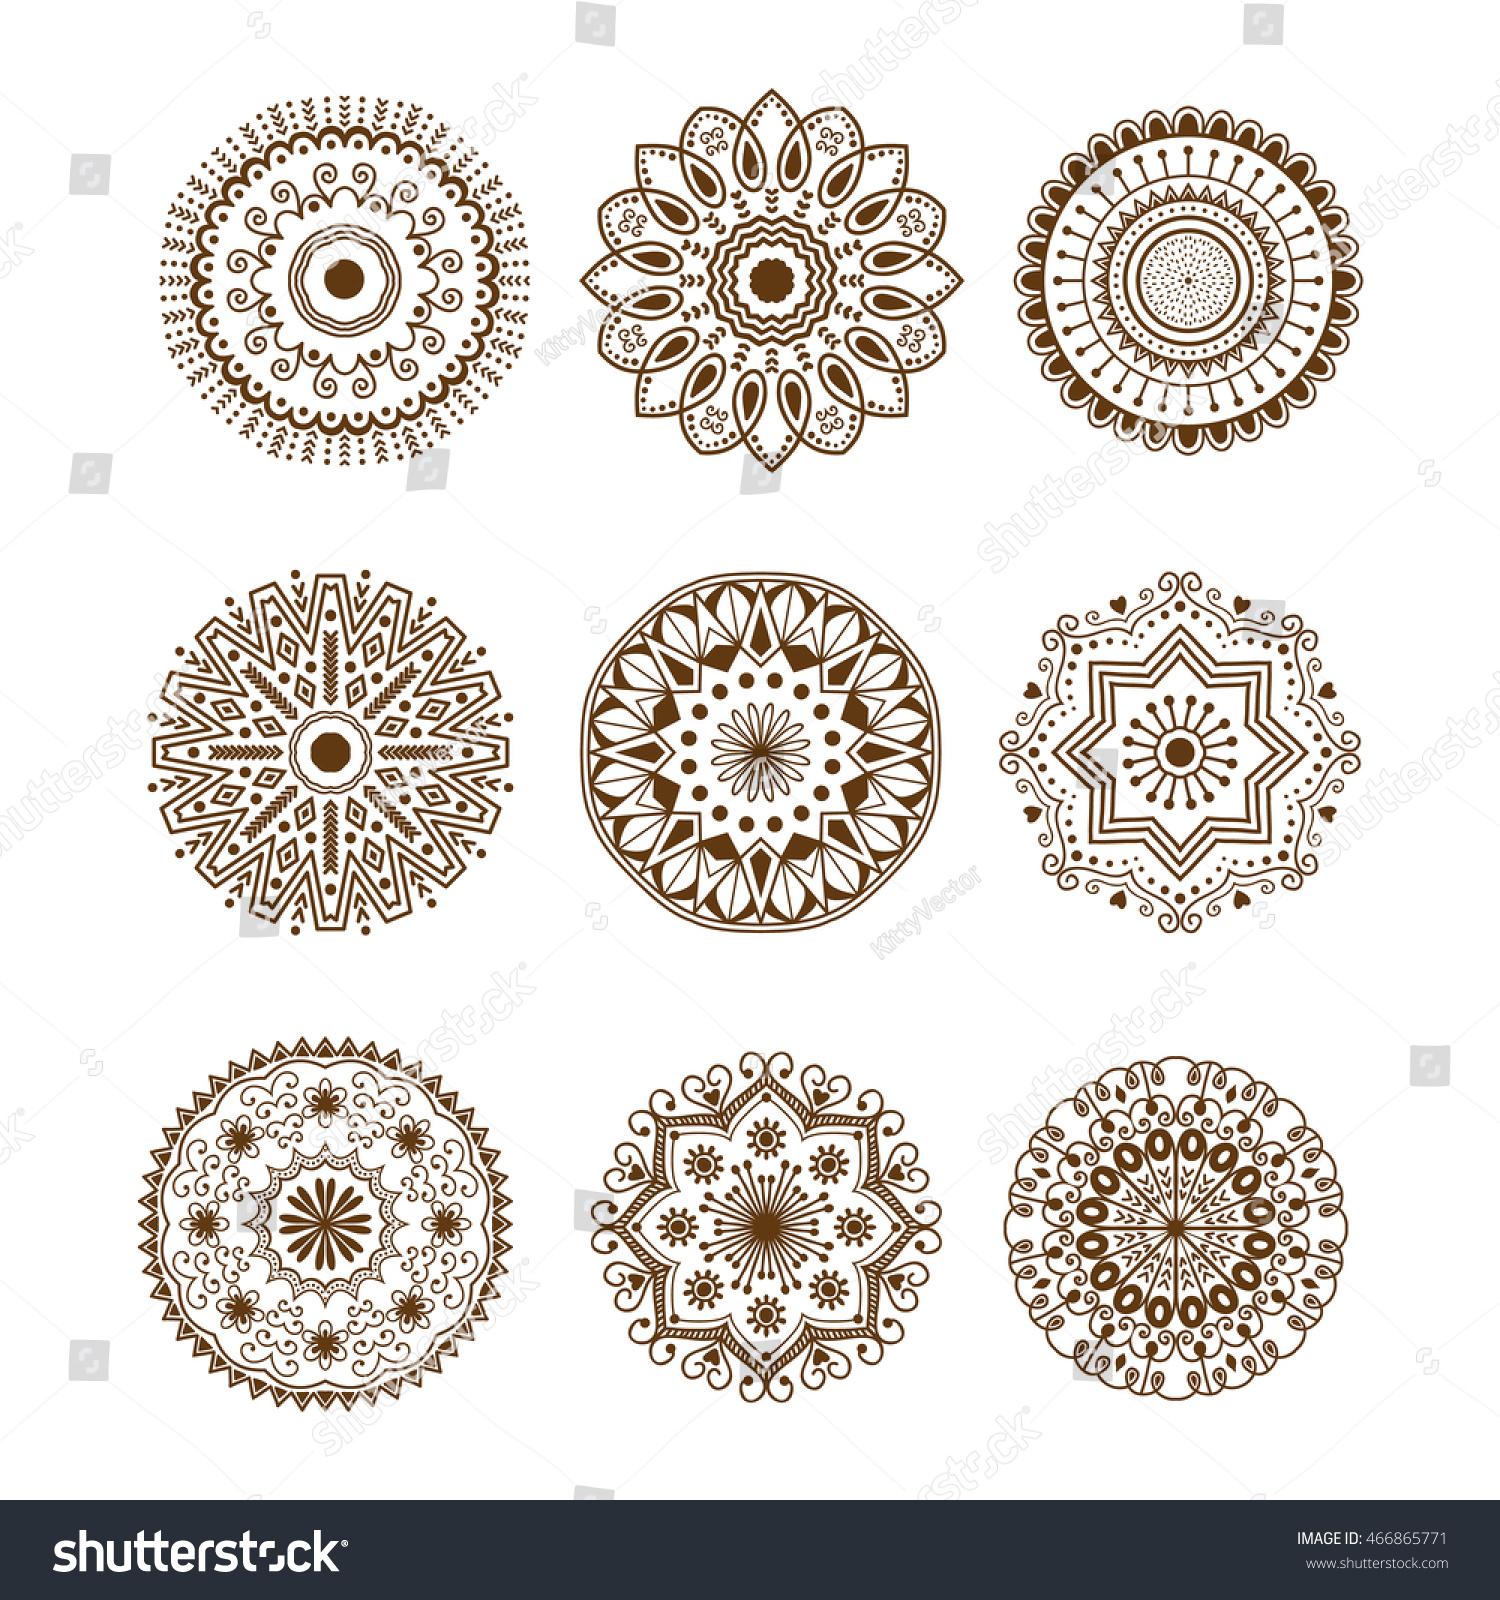 Coloring pages of mehndi hand pattern - Hand Drawn Henna Abstract Mandala Pattern Flowers And Paisley Doodle Coloring Page